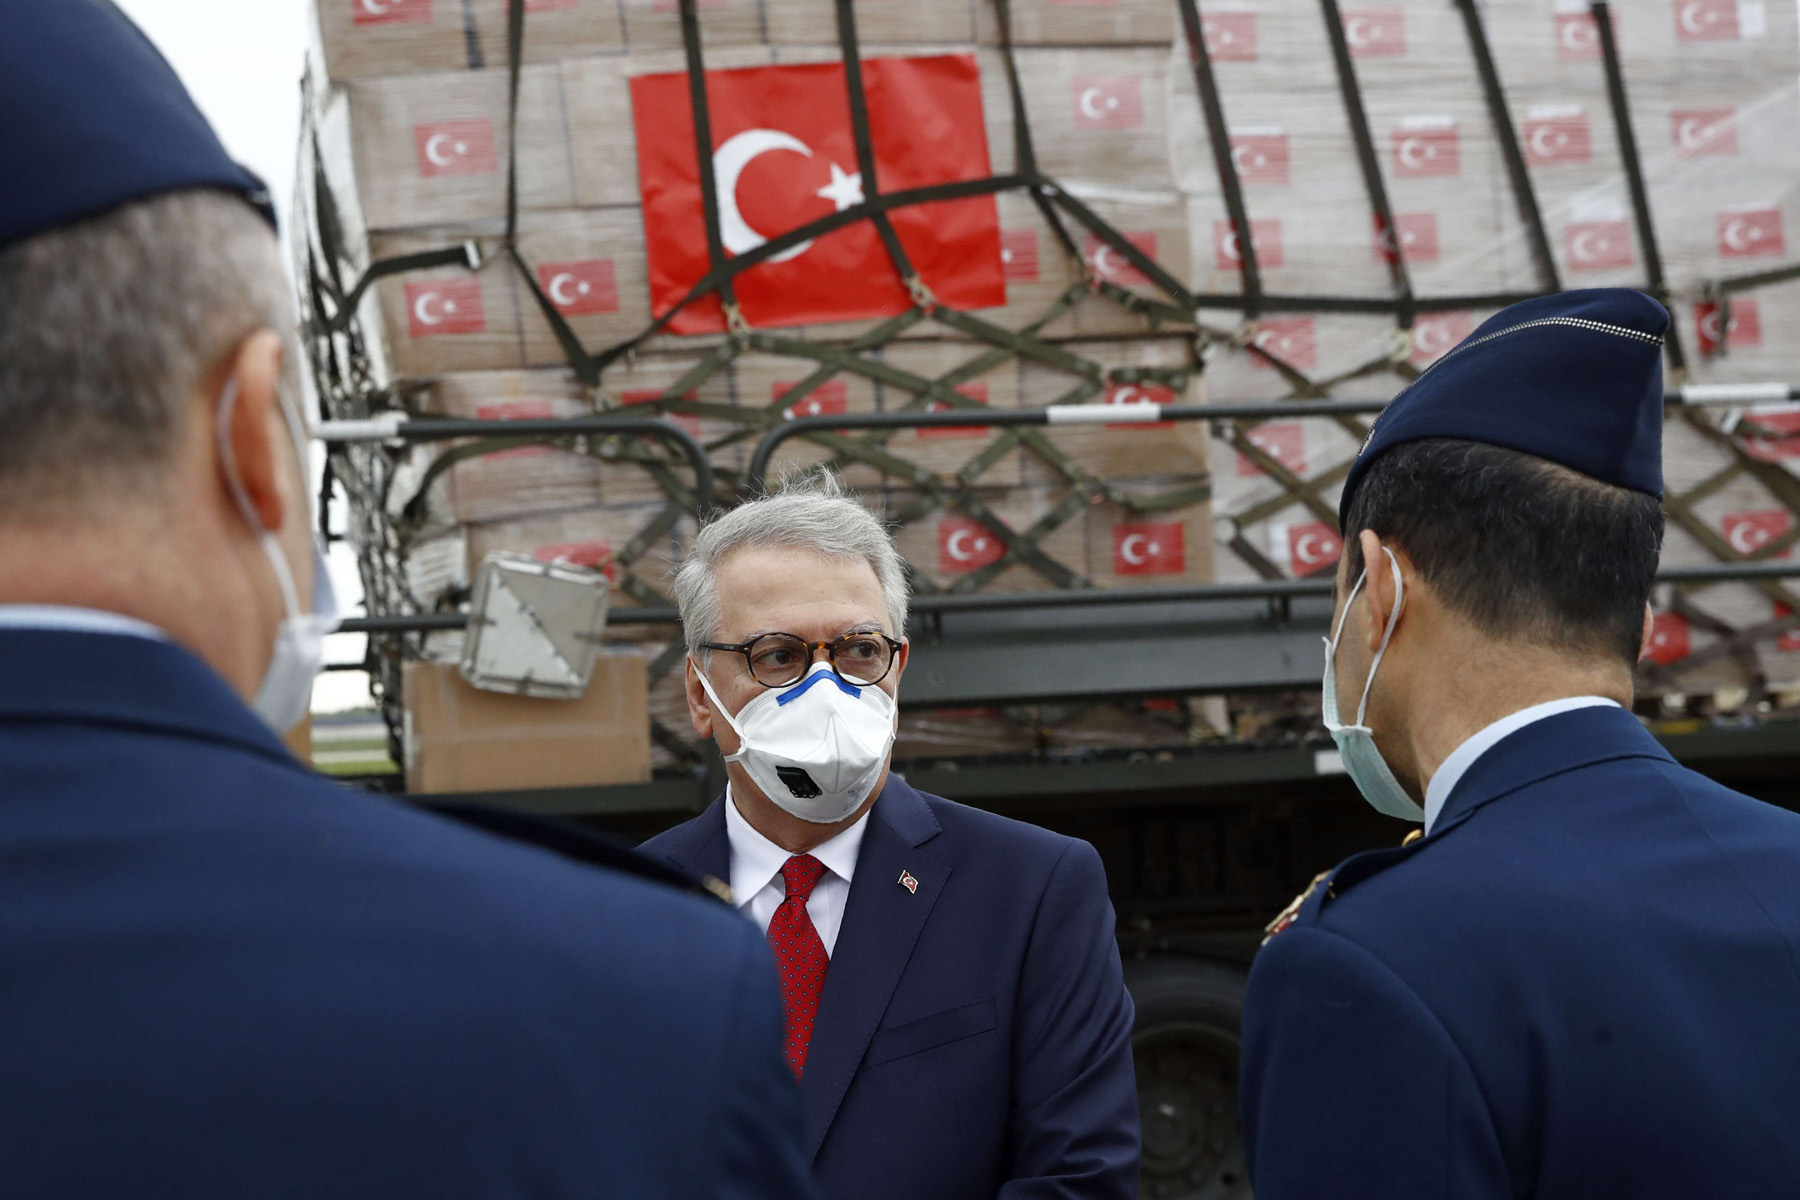 Turkish Ambassador to the United States, center, stands on a tarmac as a military aircraft carrying a donation of medical supplies from Turkey is unloaded, April 28, 2020, at US Andrews Air Force Base, Maryland. (AP)